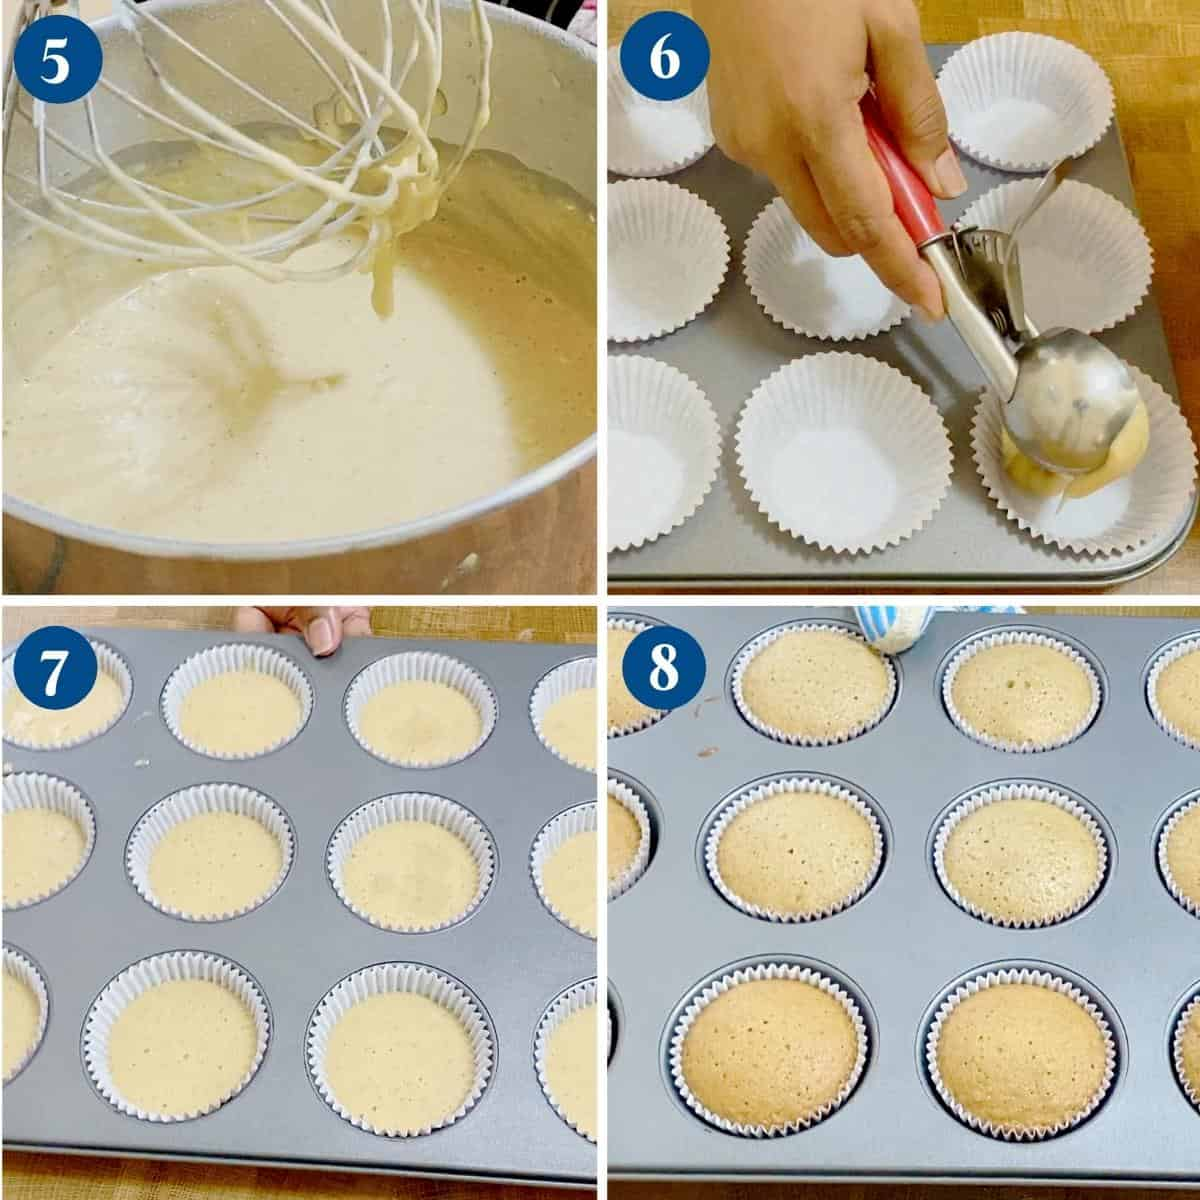 Progress pictures filing the cupcake liners with batter.